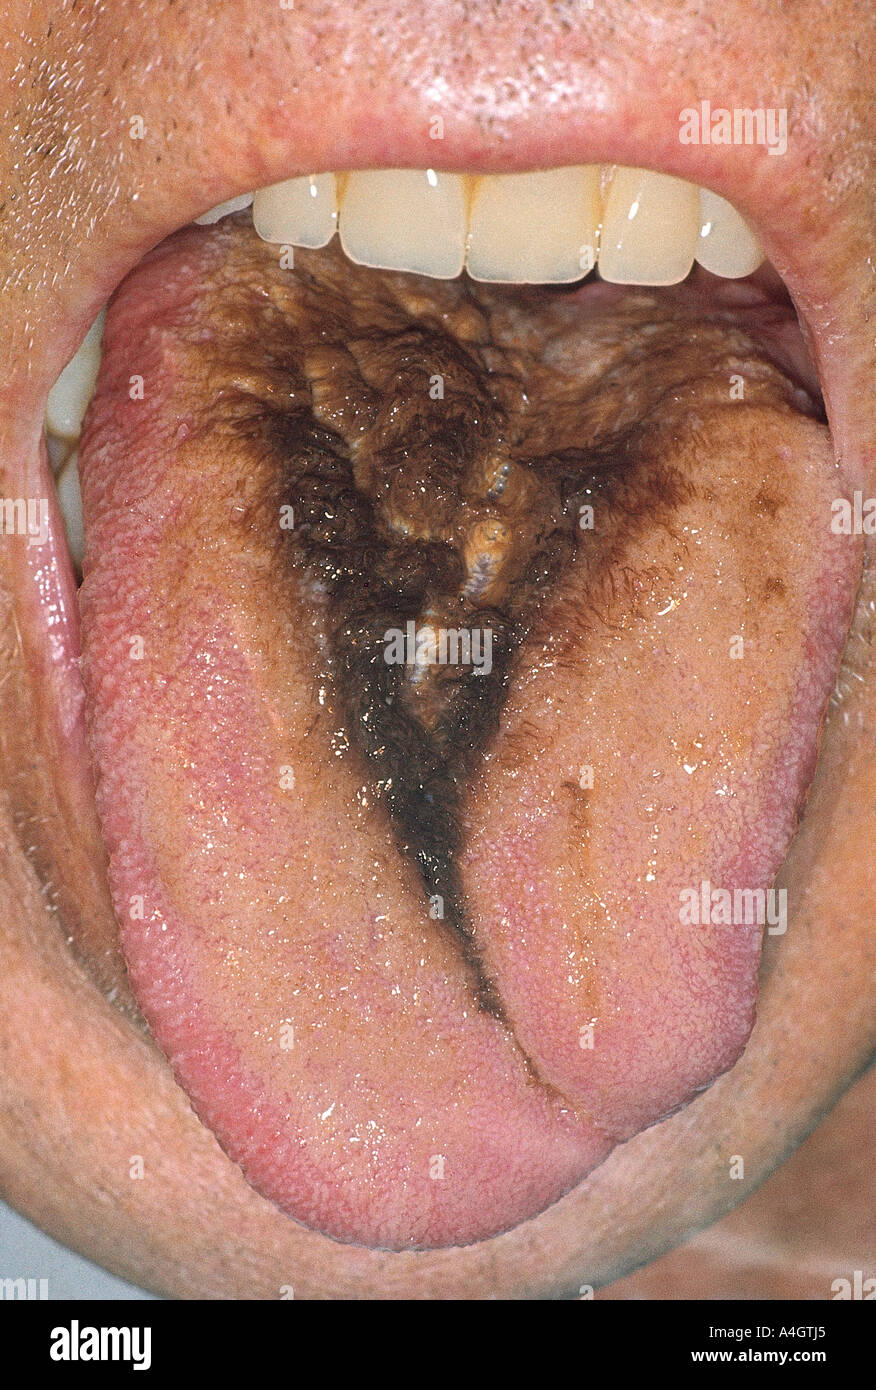 This guy previously had oral cancer which was treated with a skin graft